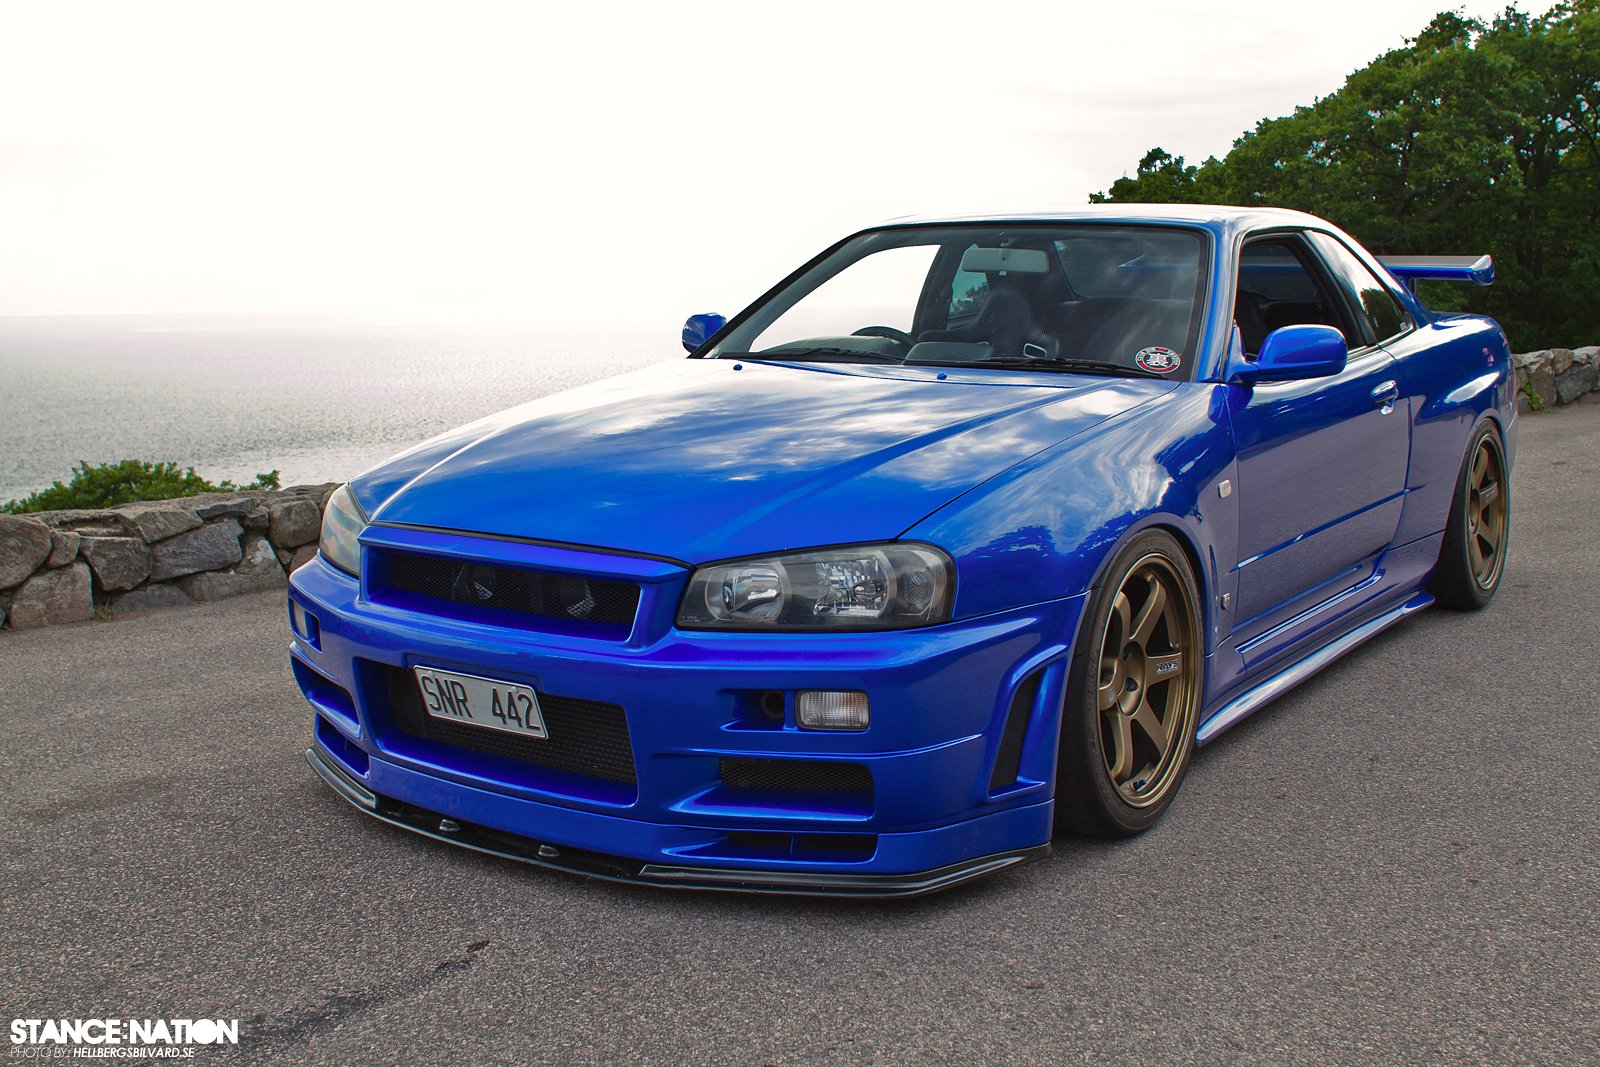 2001 nissan skyline r34 gt r tuning custom supercar. Black Bedroom Furniture Sets. Home Design Ideas